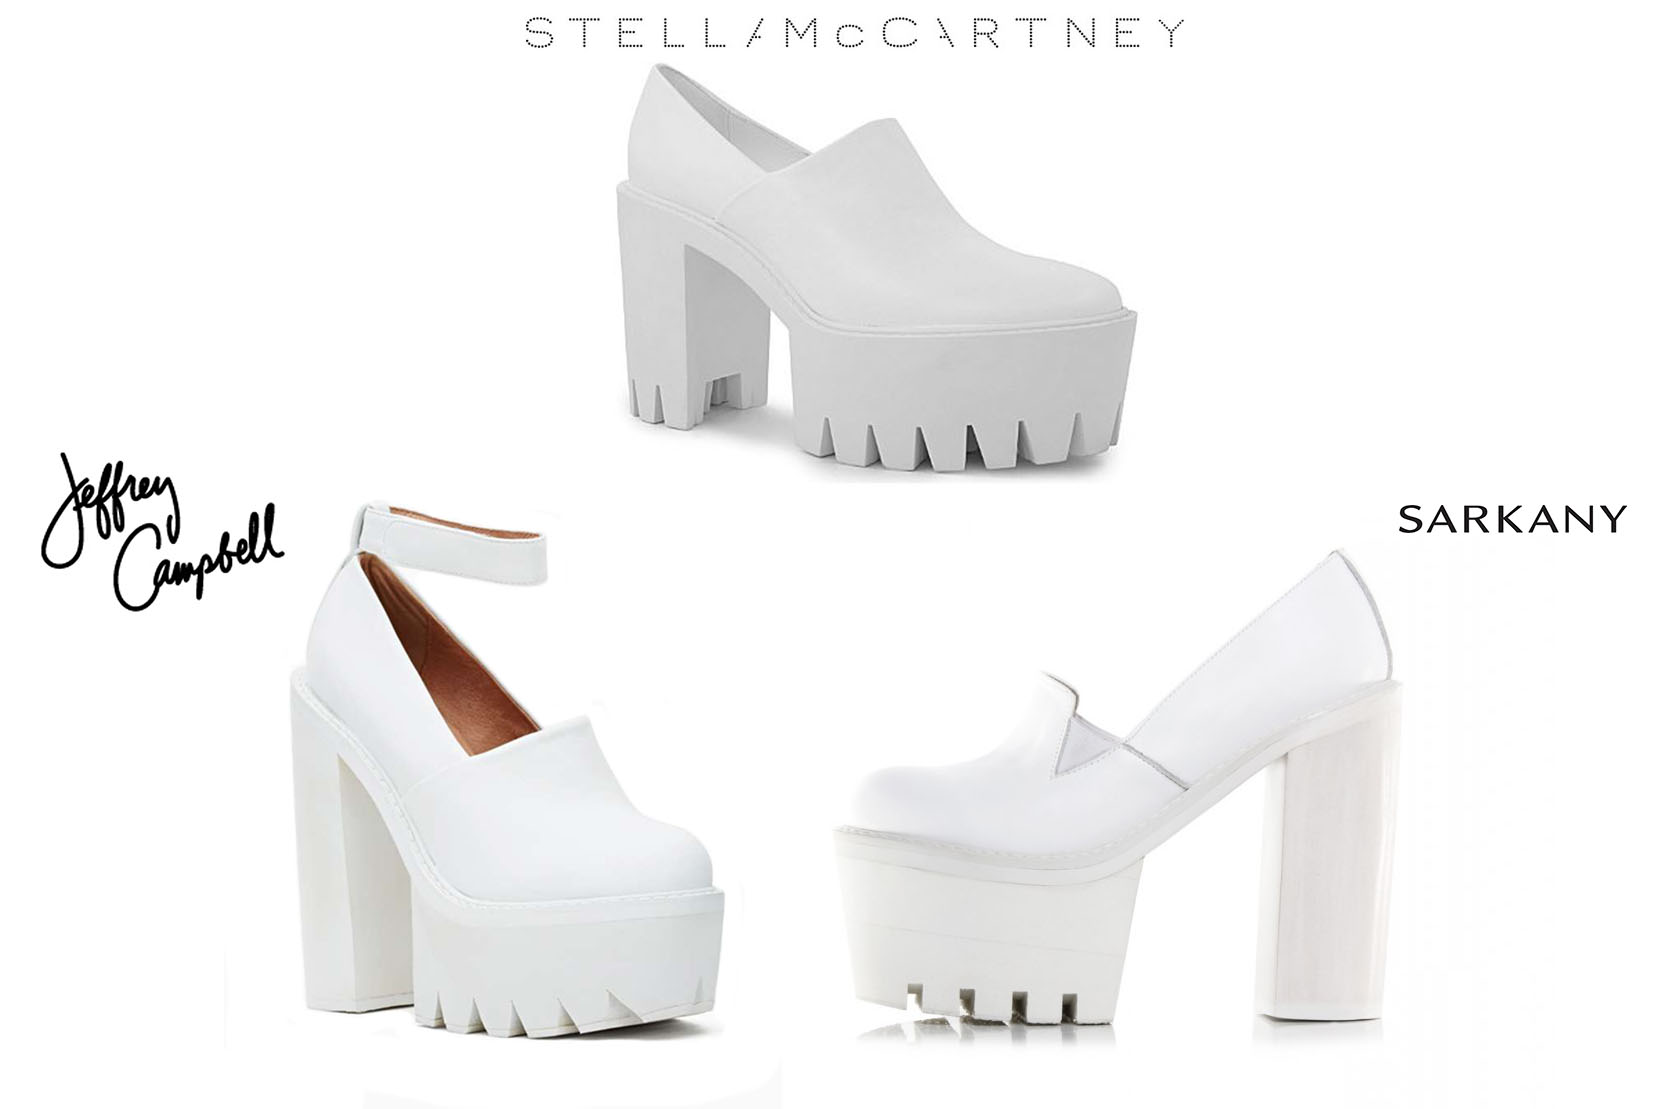 Stella-McCarney-Loafer-Fall-2013-Jeffrey-Campbell-Scully-Sarkany-Benis-Copias-Clones.jpg